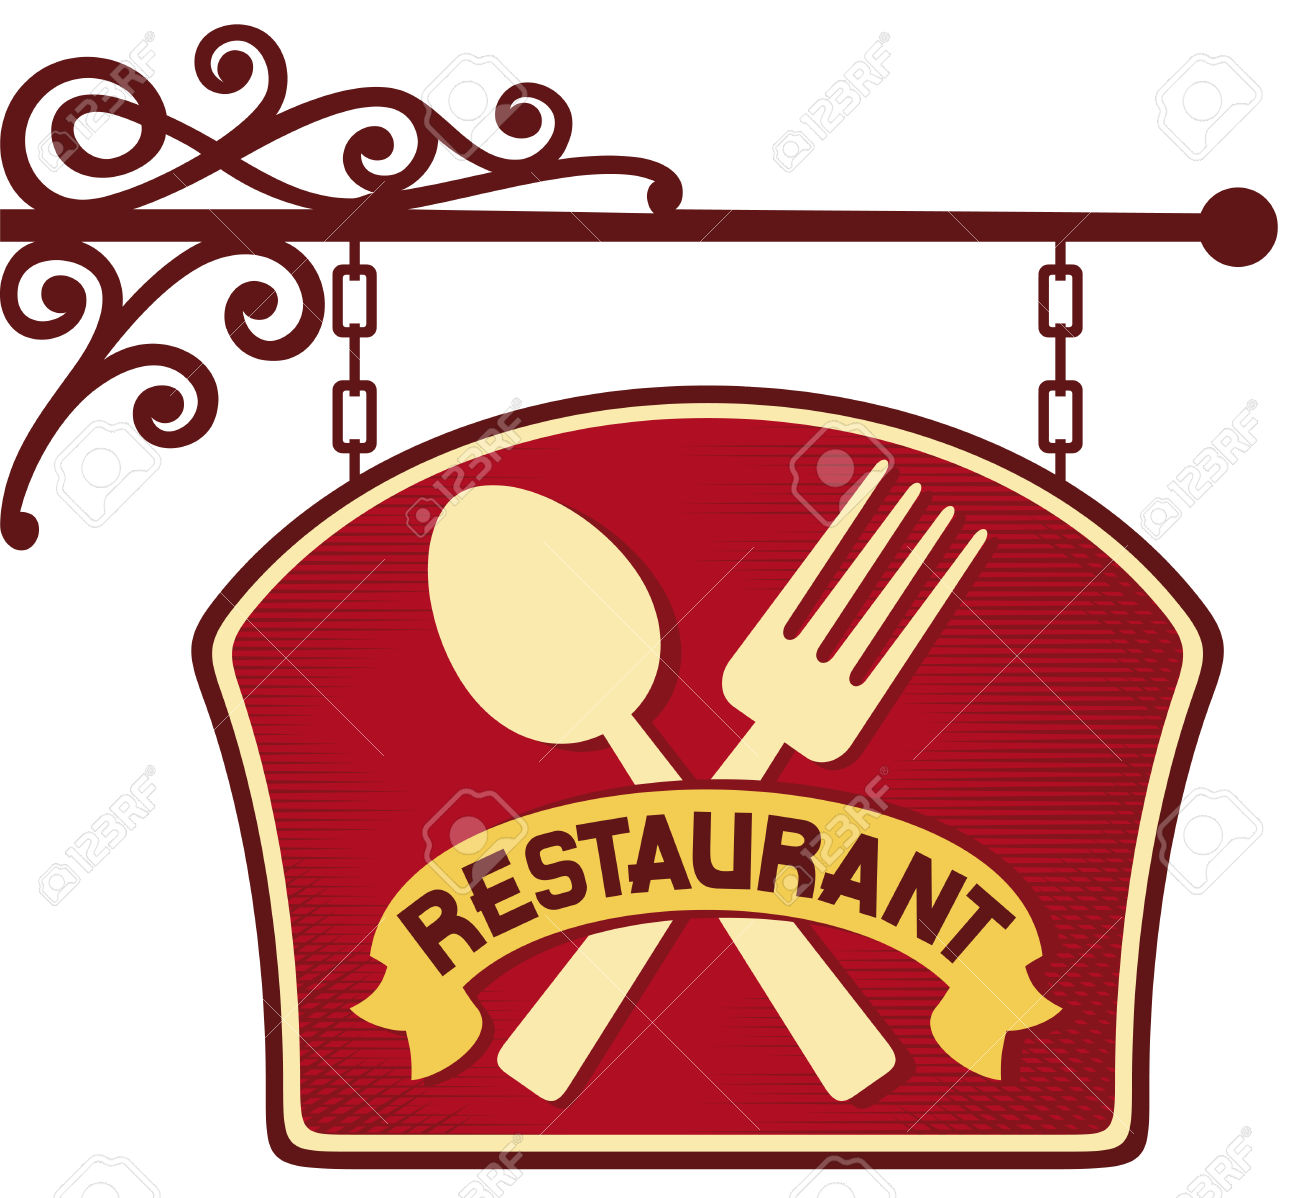 Restaurant clipart pictures banner free download 12+ Restaurant Clipart   ClipartLook banner free download